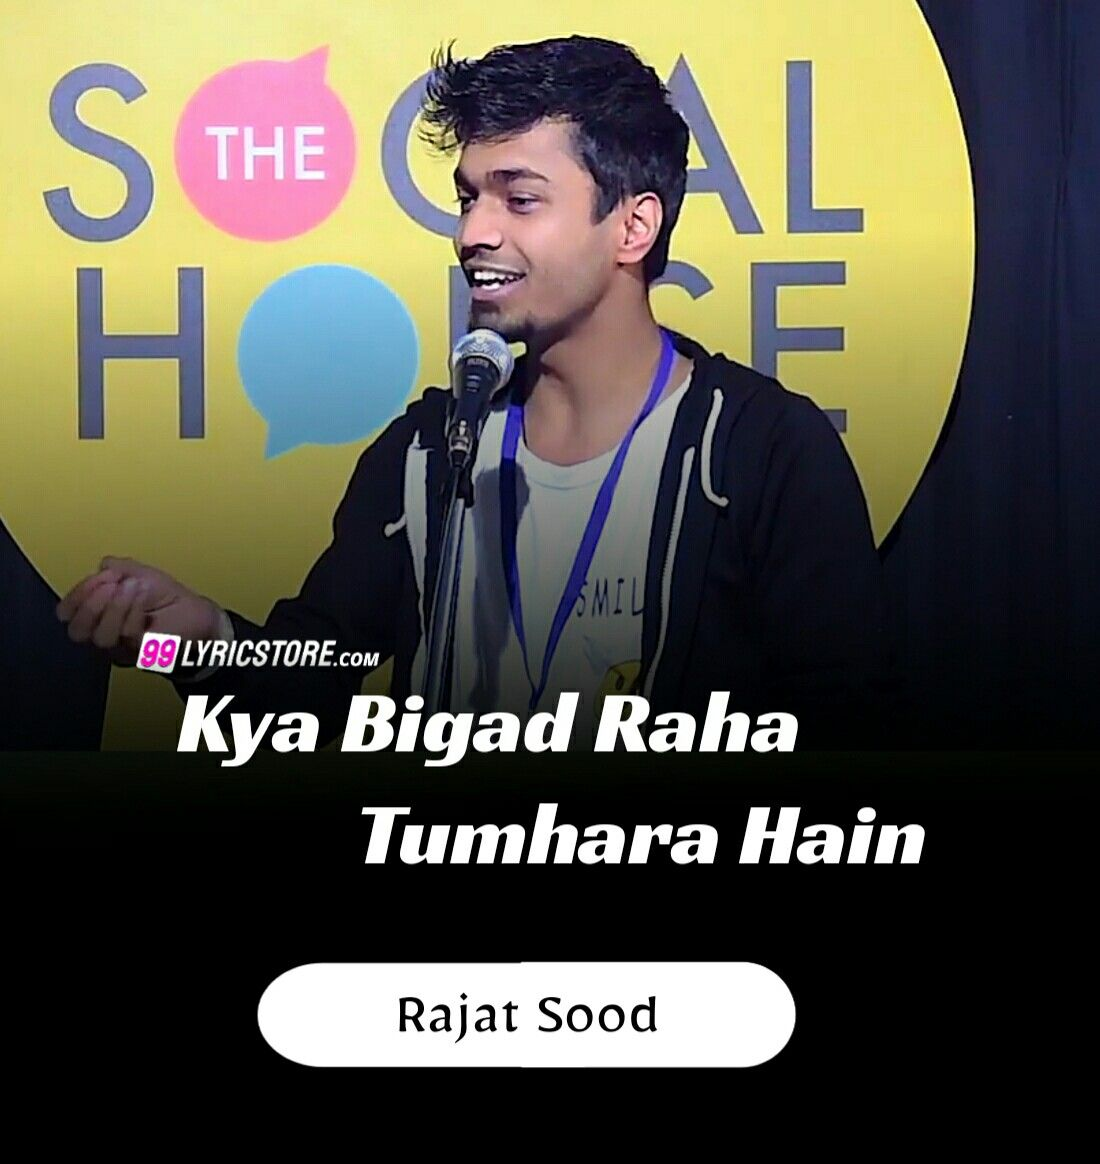 kya bigad raha tumhara hain poetry lyrics social house